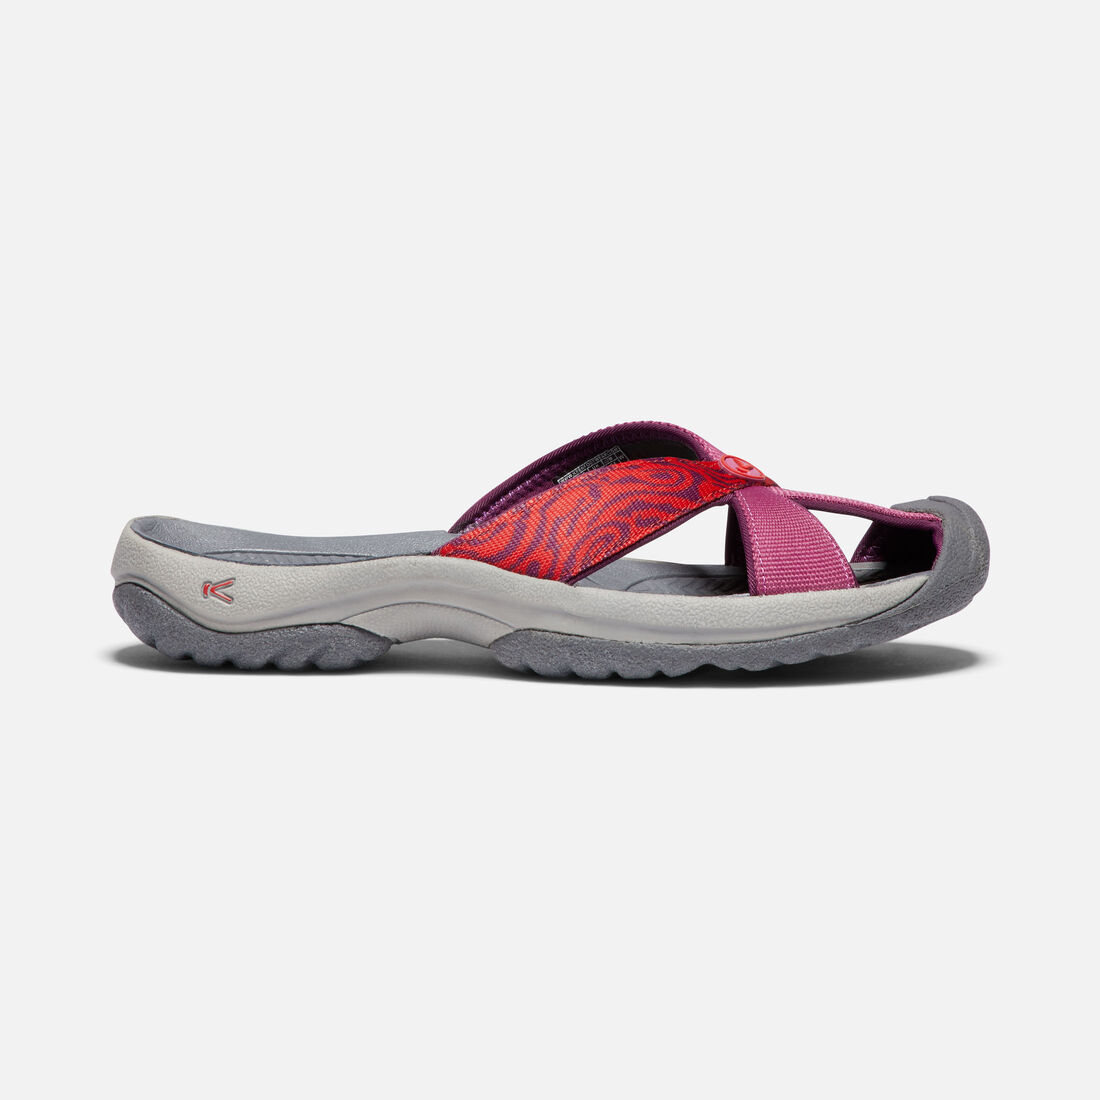 Women's Bali in RED VIOLET/BOYSENBERRY - large view.